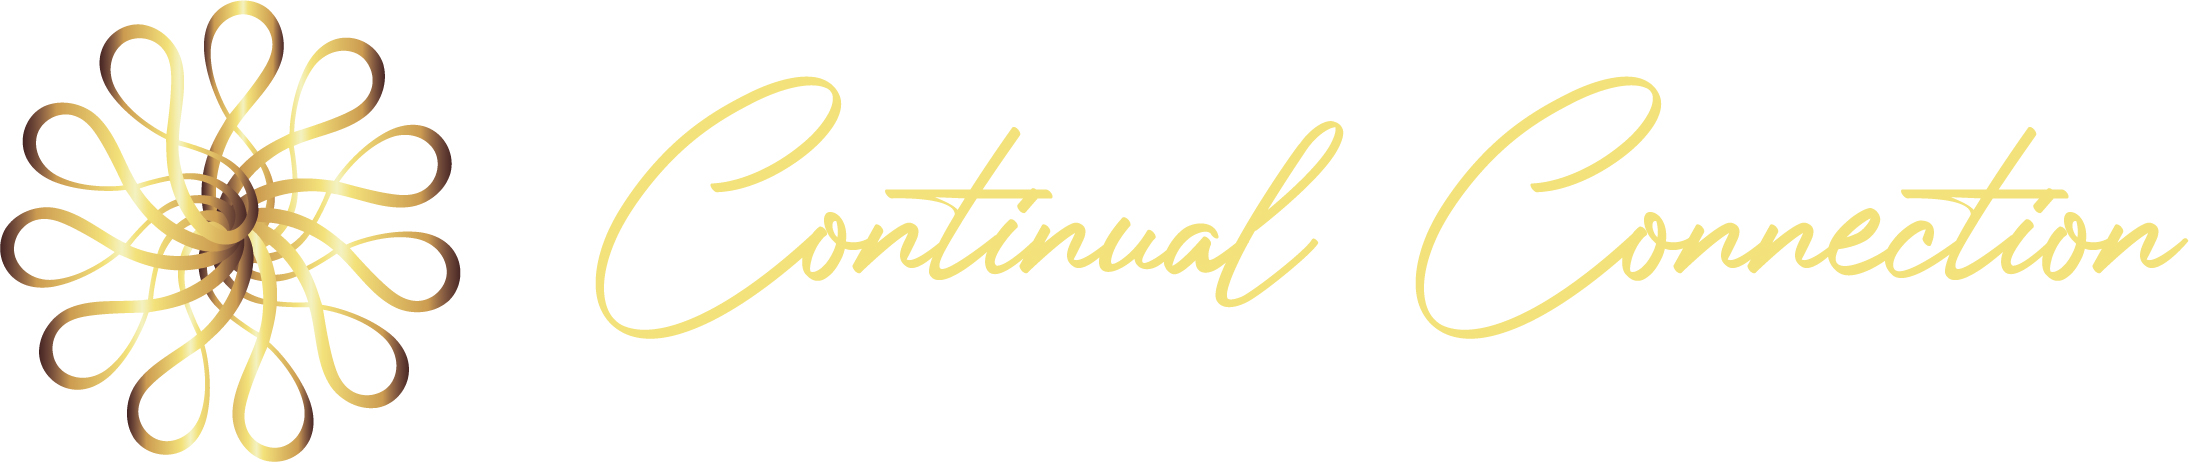 Continual Connection